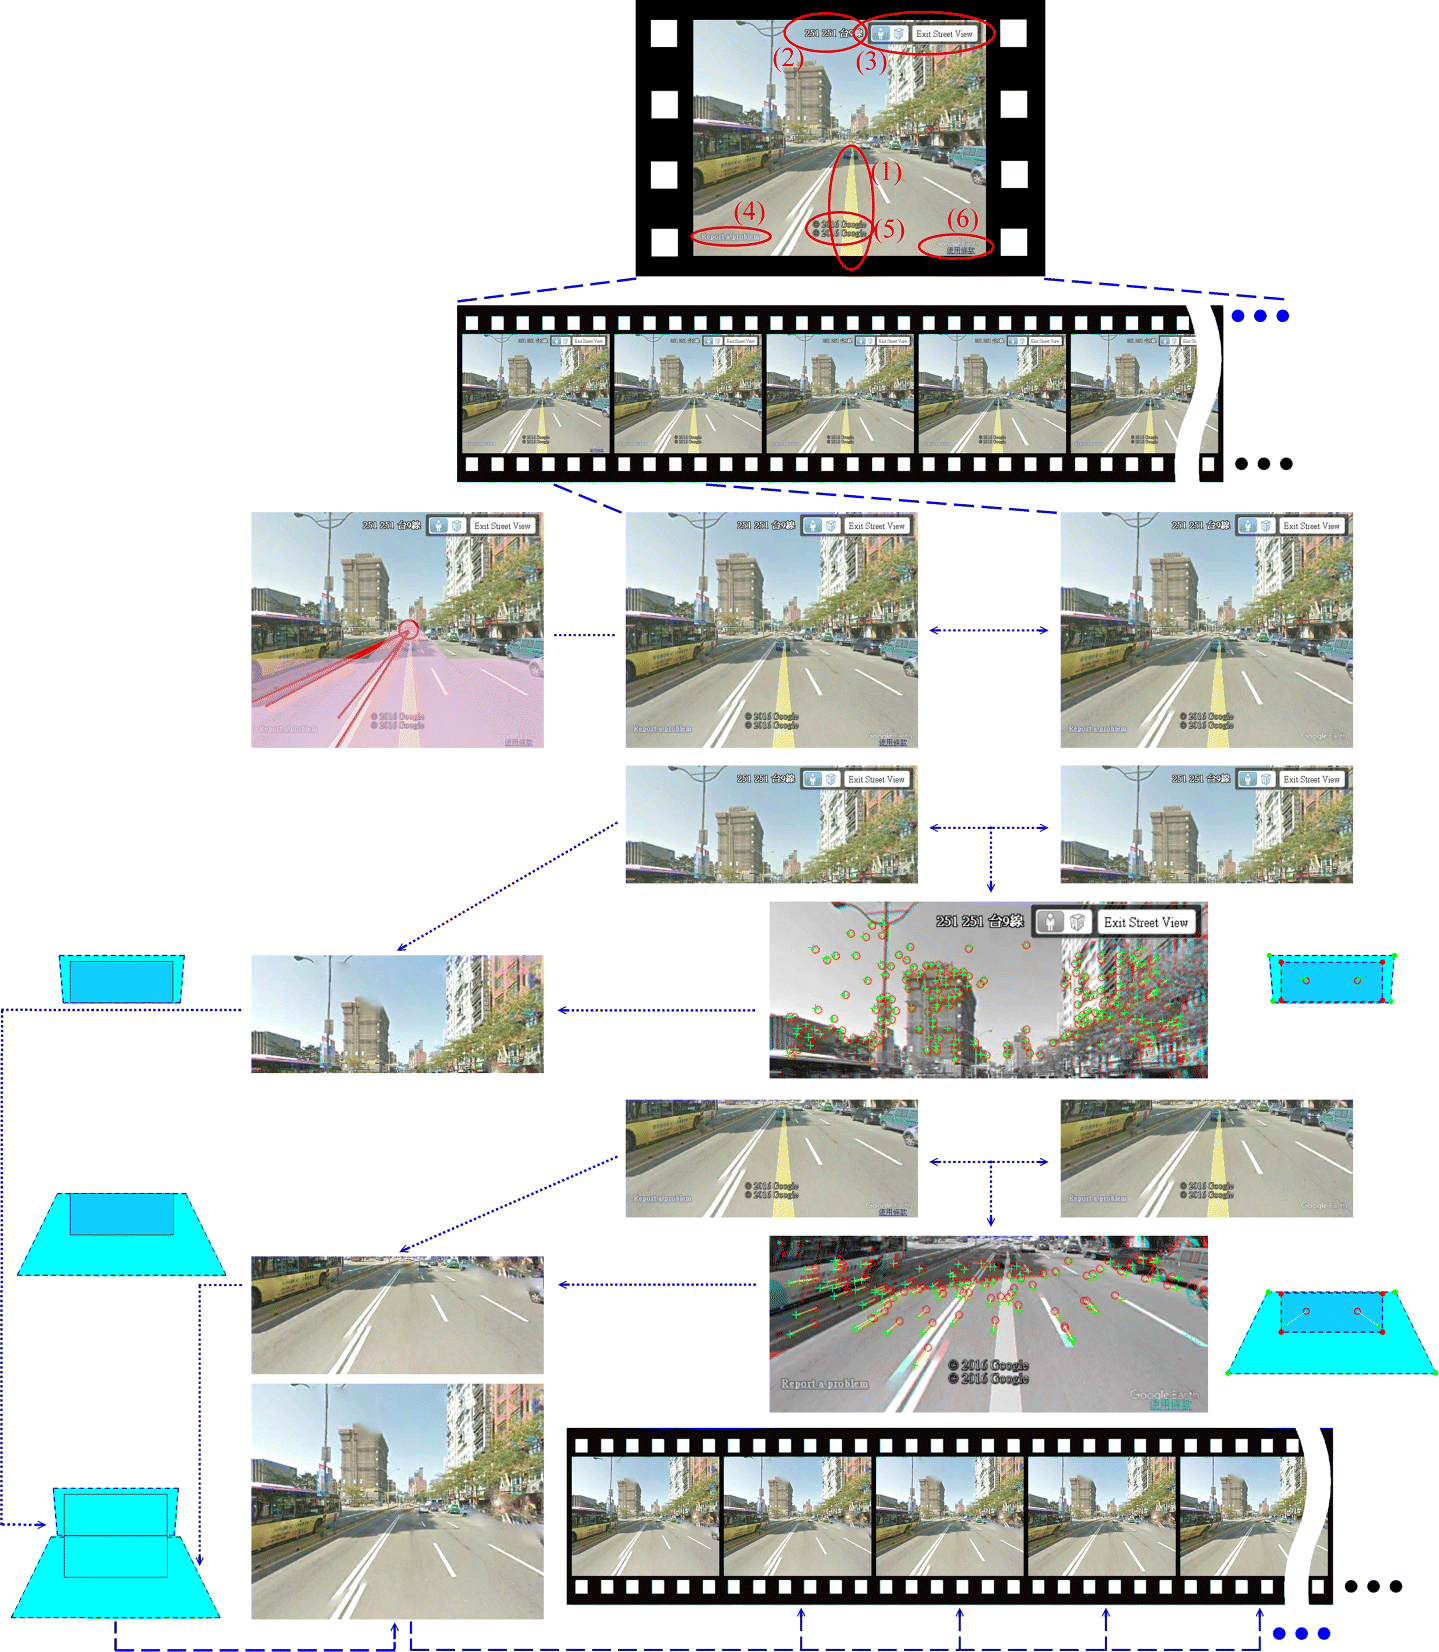 Automatic generation of video navigation from Google Street View